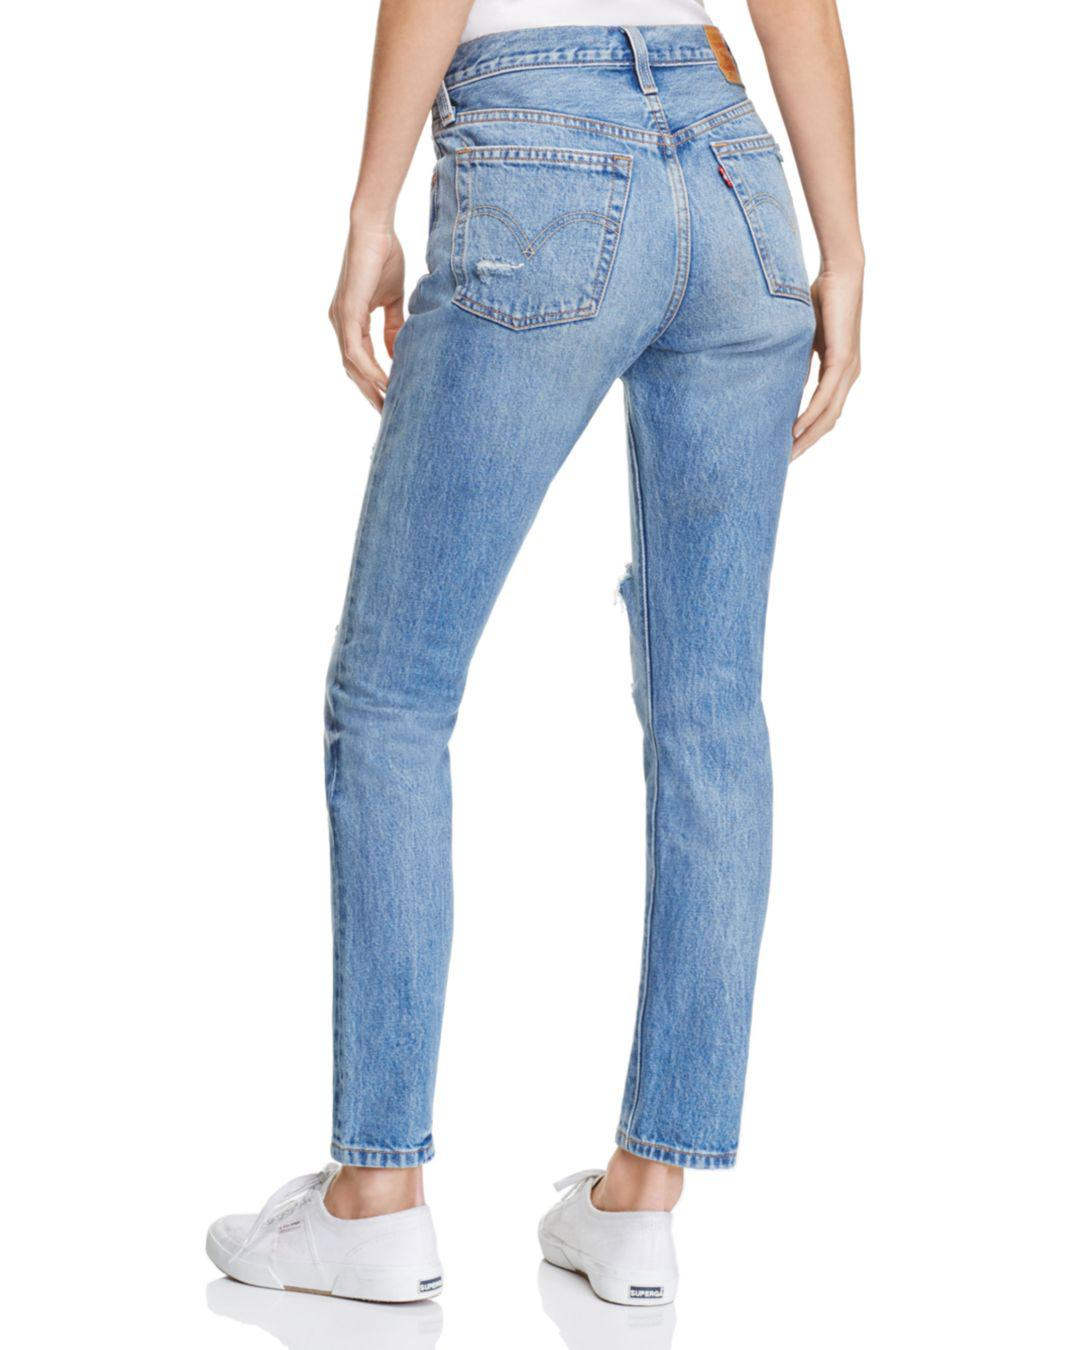 cdd1e13350e7ae Levi's 501® Skinny Jeans In Old Hangouts in Blue - Lyst